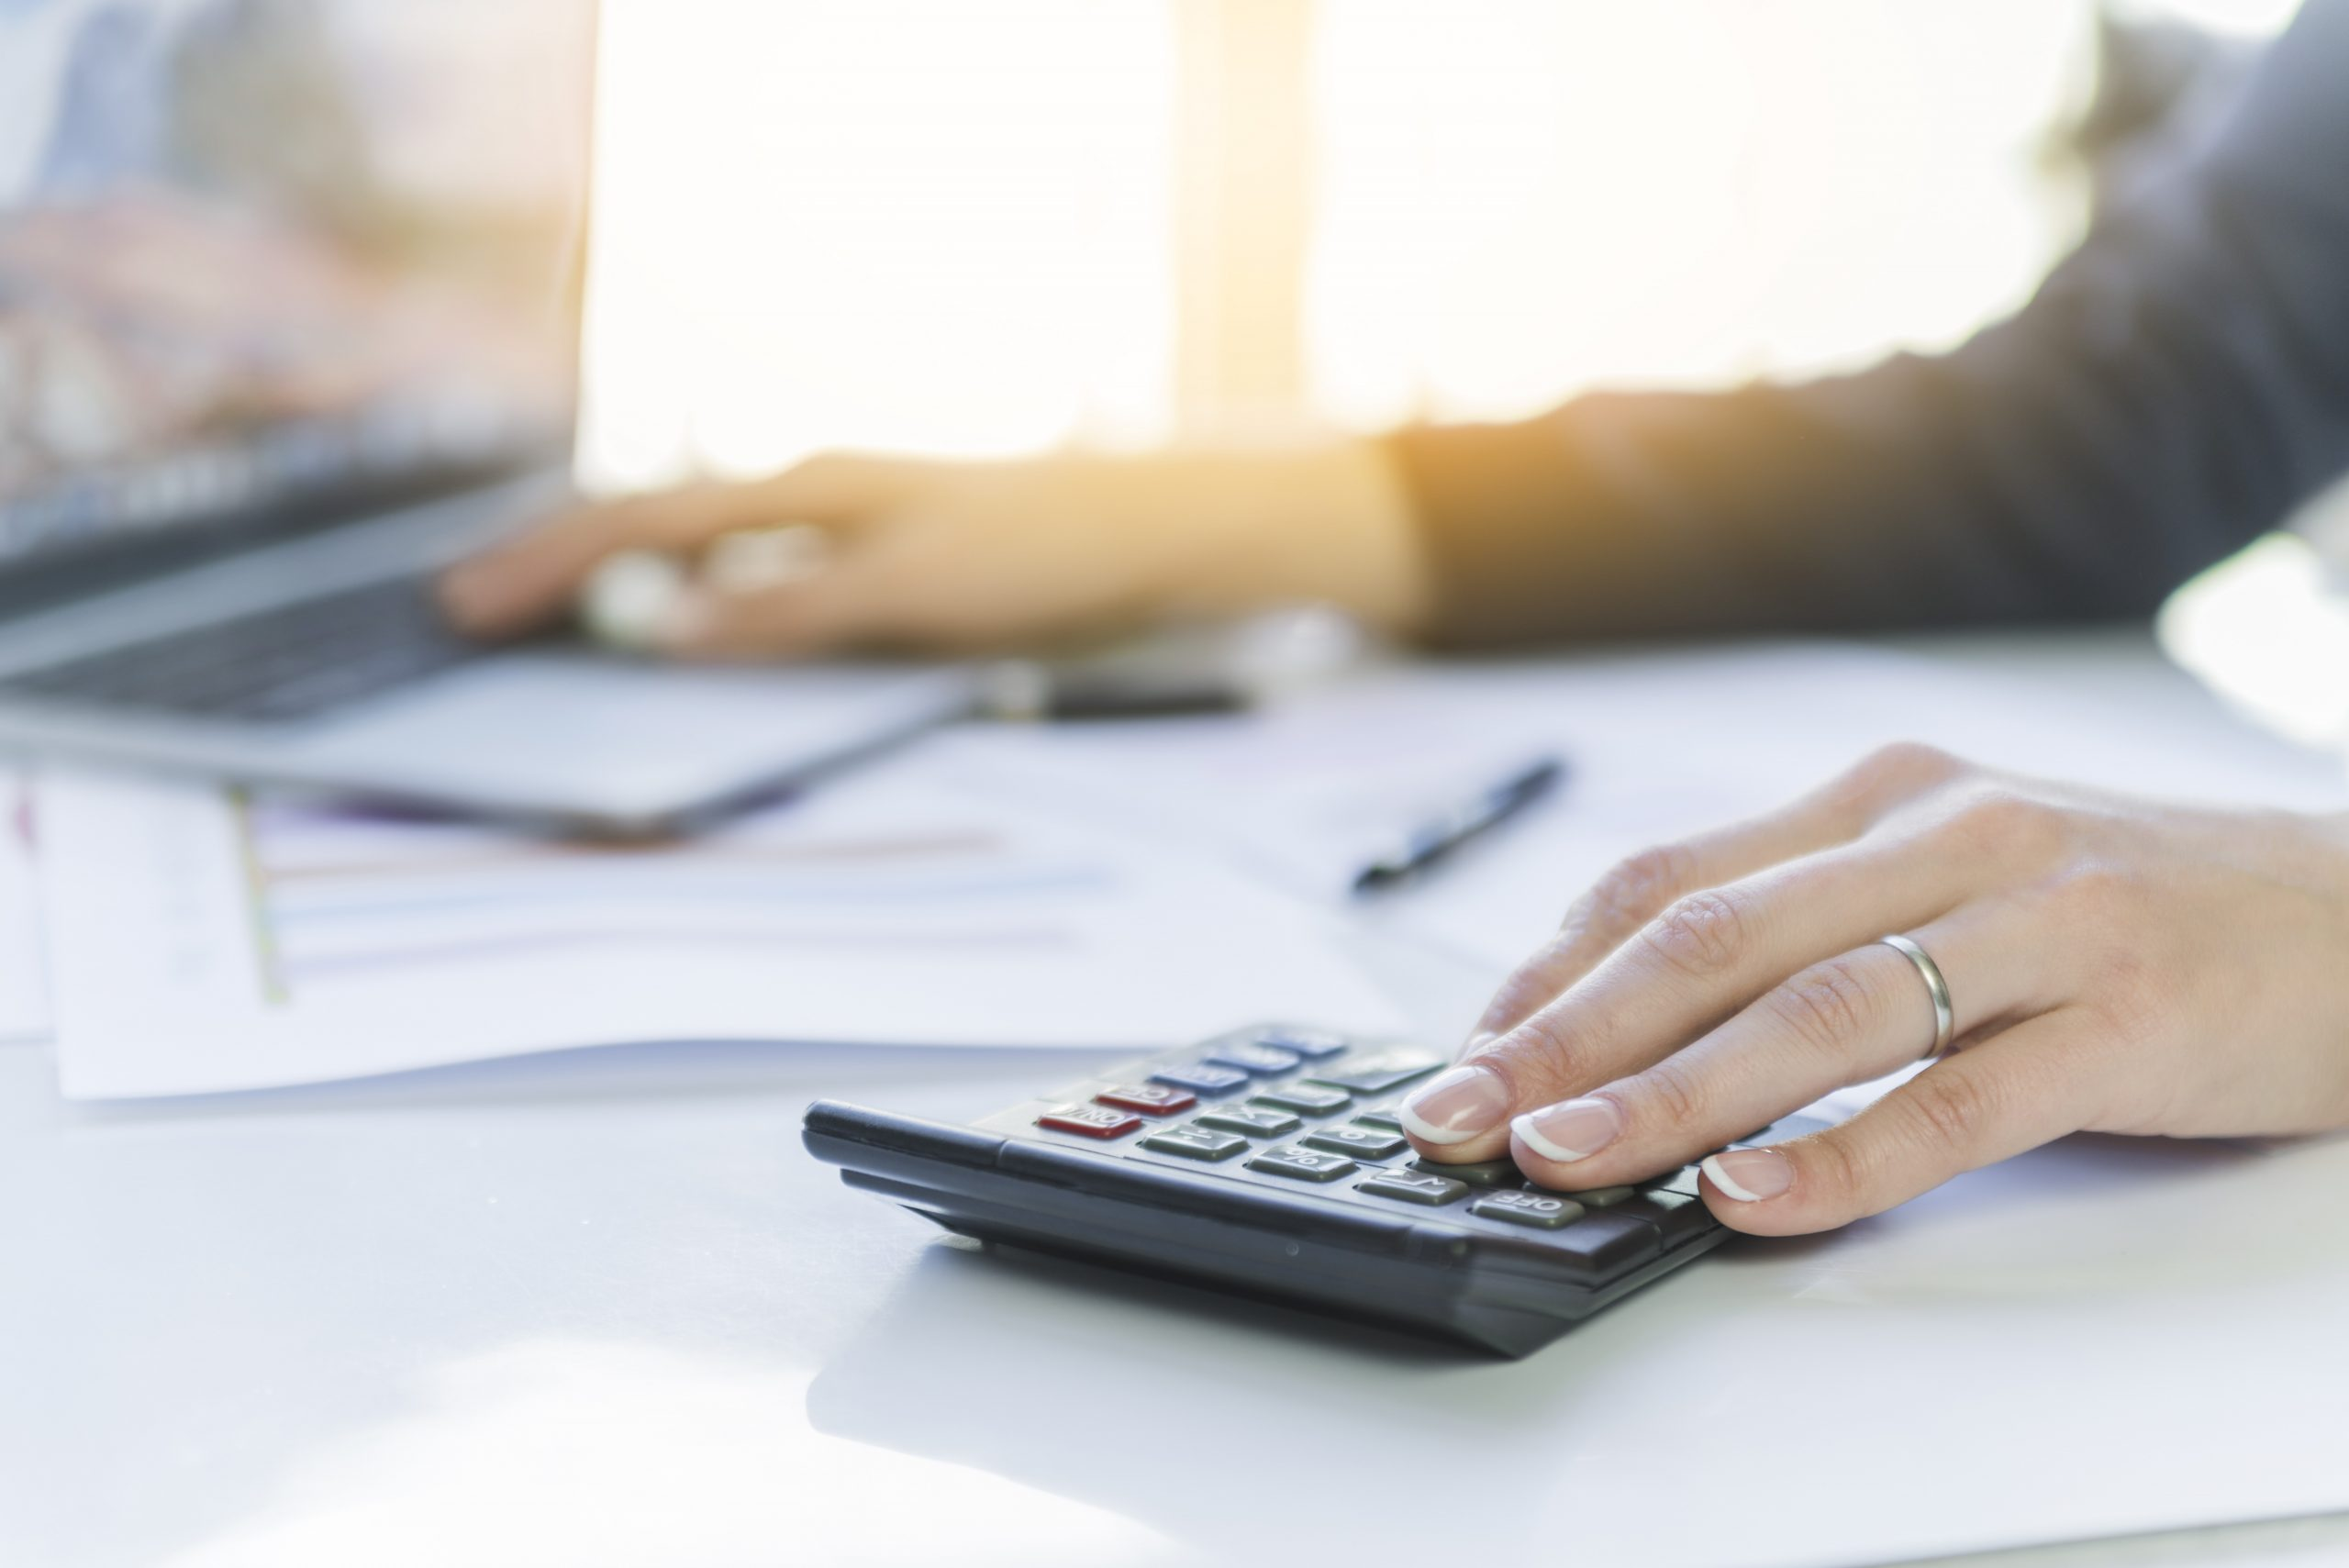 Payment Trends and COVID-19: Adjusting to Gain Lost Revenue